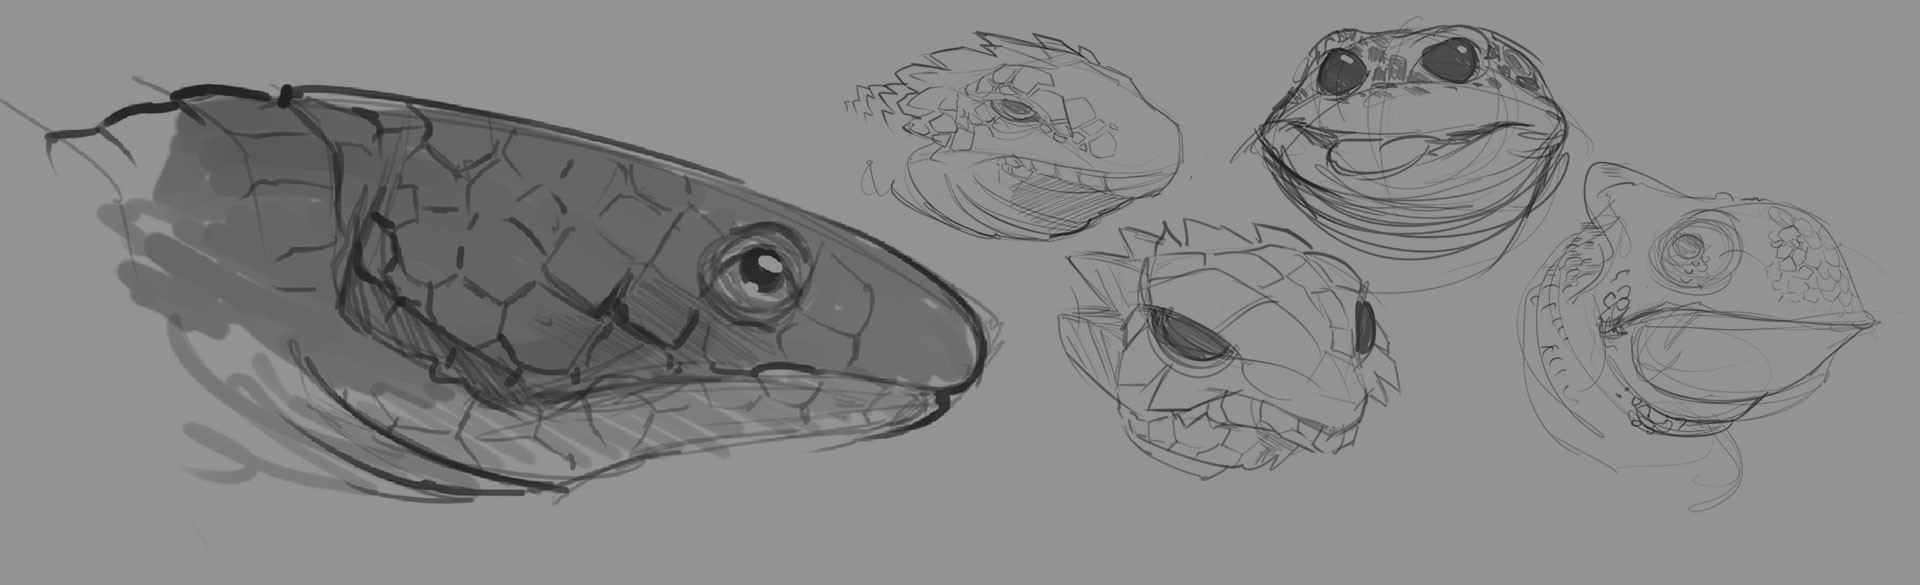 Chx welch lizard studies